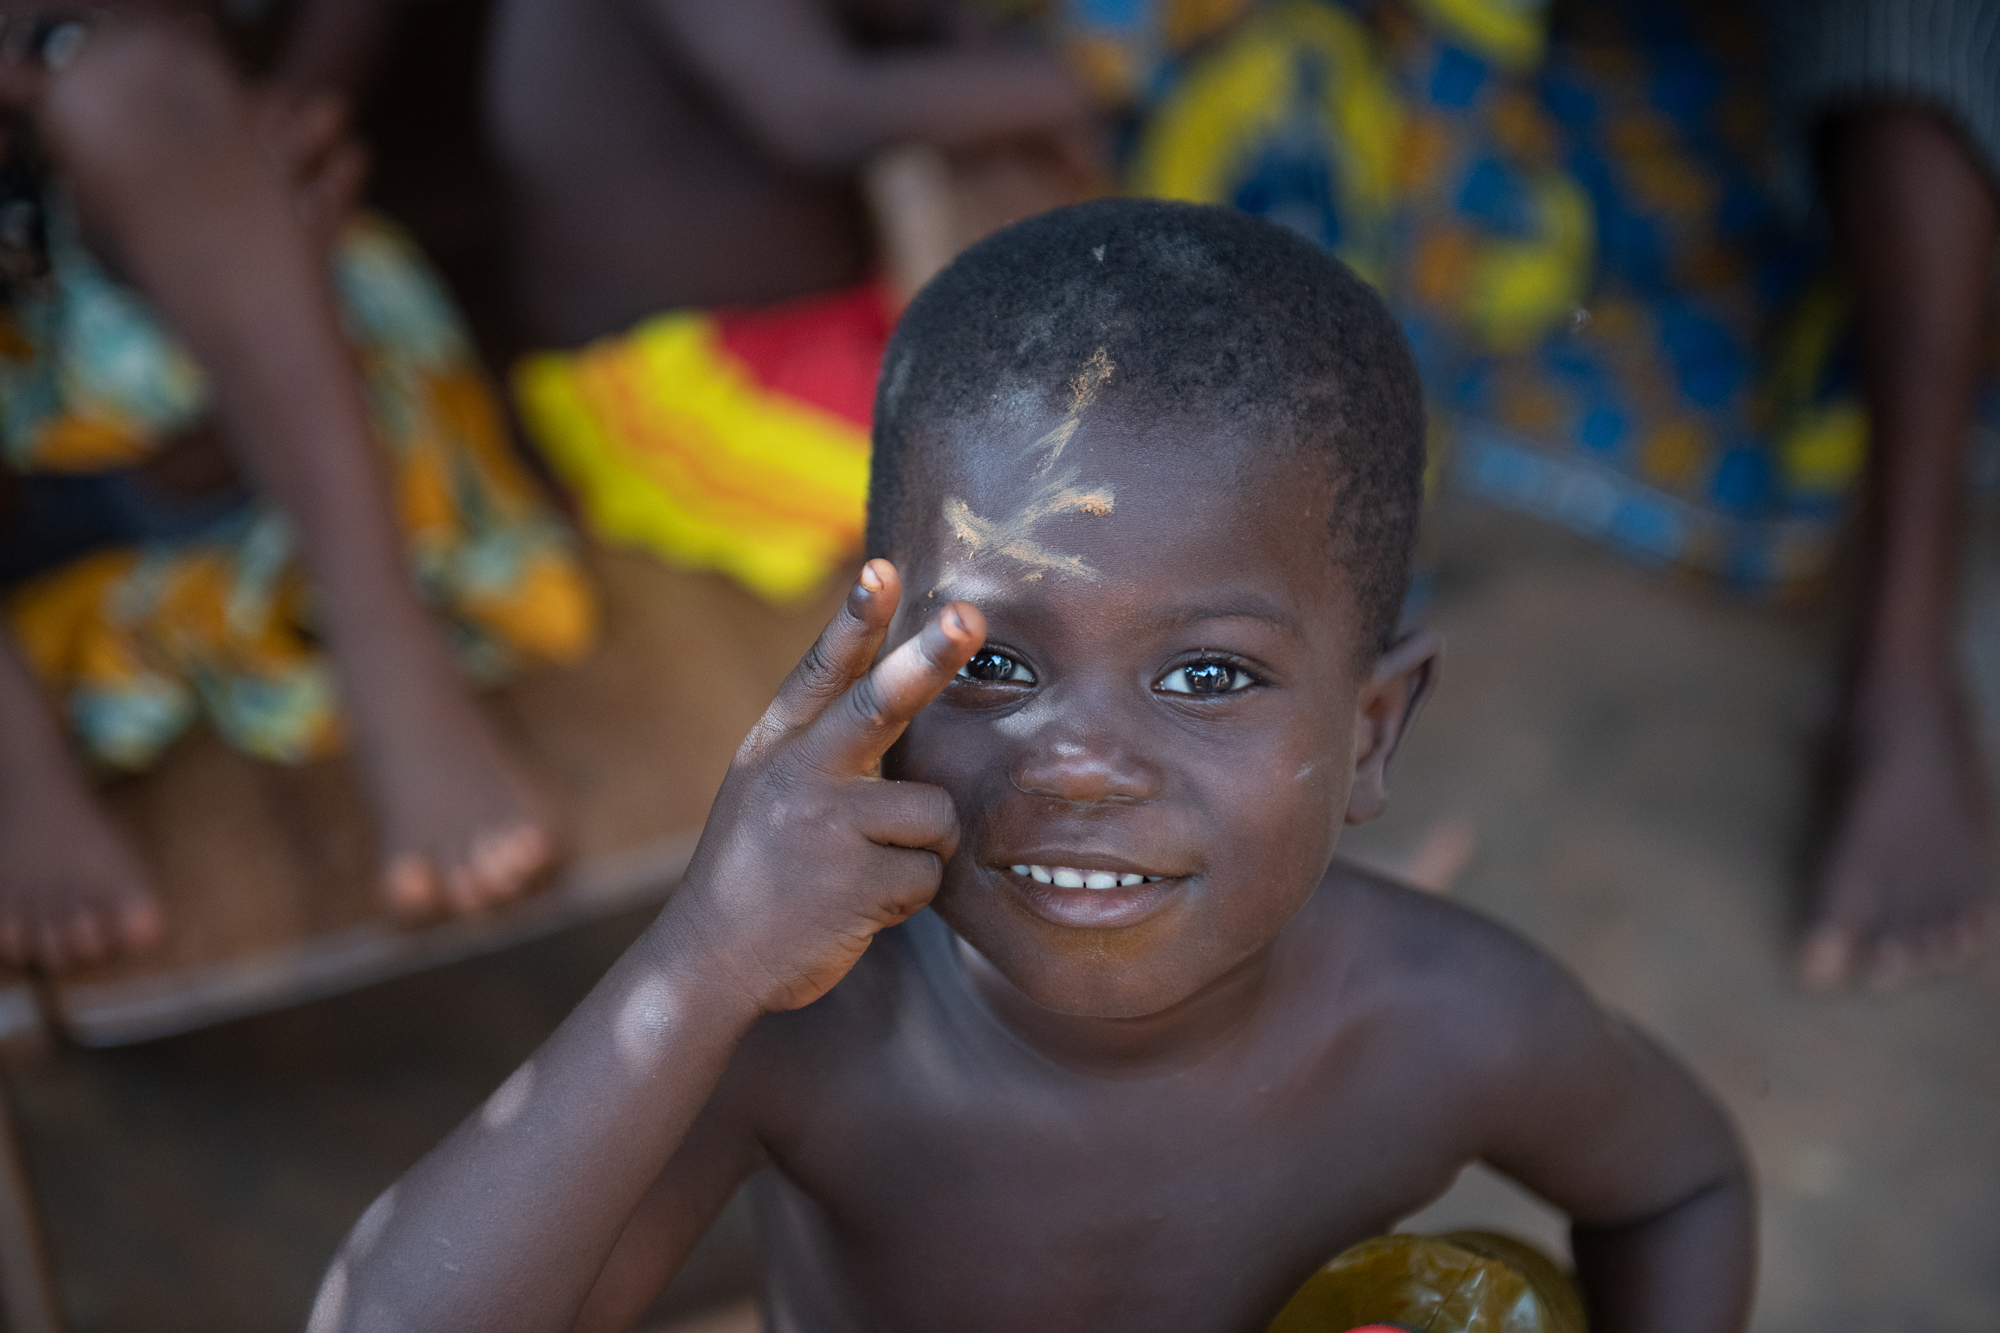 Village Child, Cove, Benin